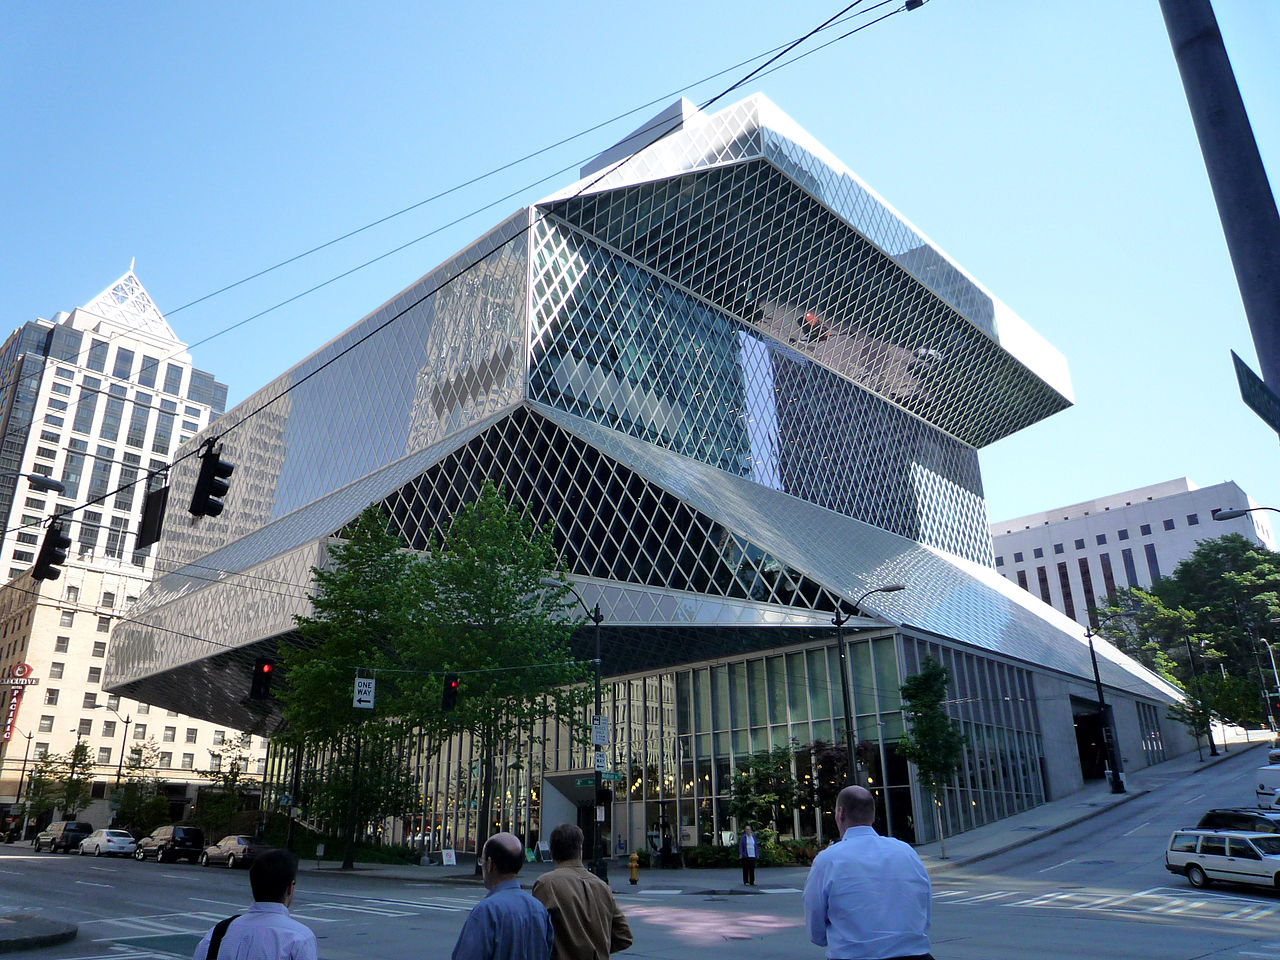 1280px-2009-0604-19-SeattleCentralLibrary.jpg